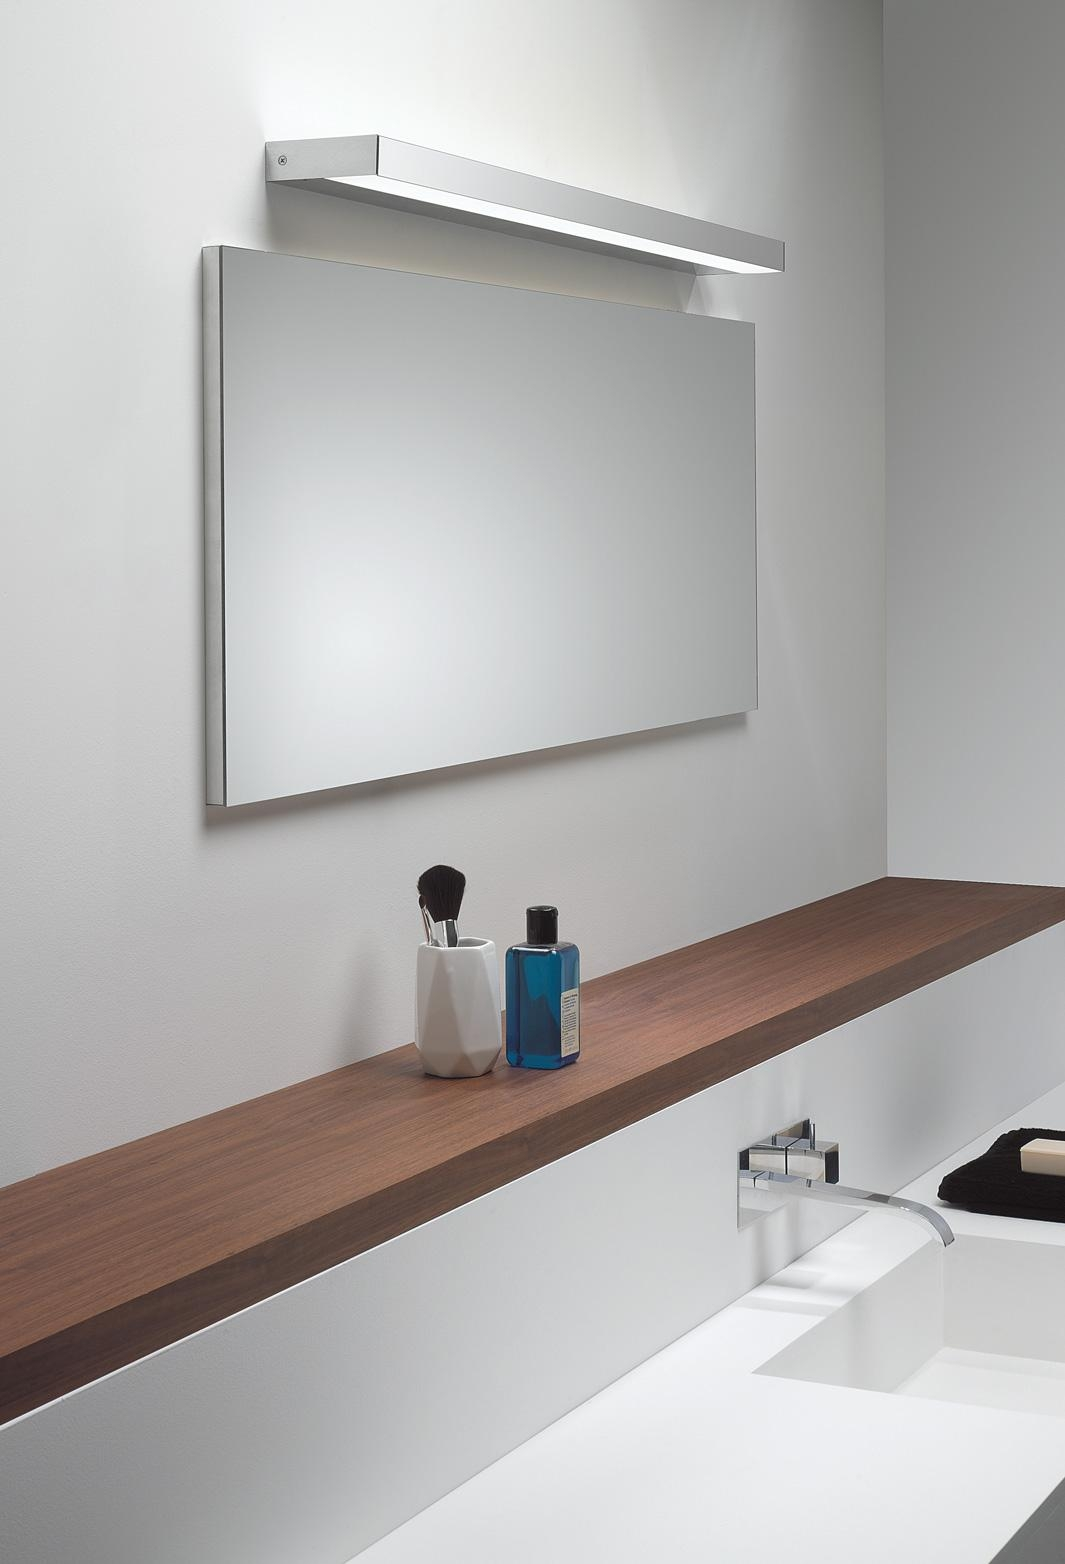 Cool Led Light Wall Mounted Makeup Mirrorglimmernameeks Inside Bathroom Wall Mirrors With Lights (Image 9 of 20)